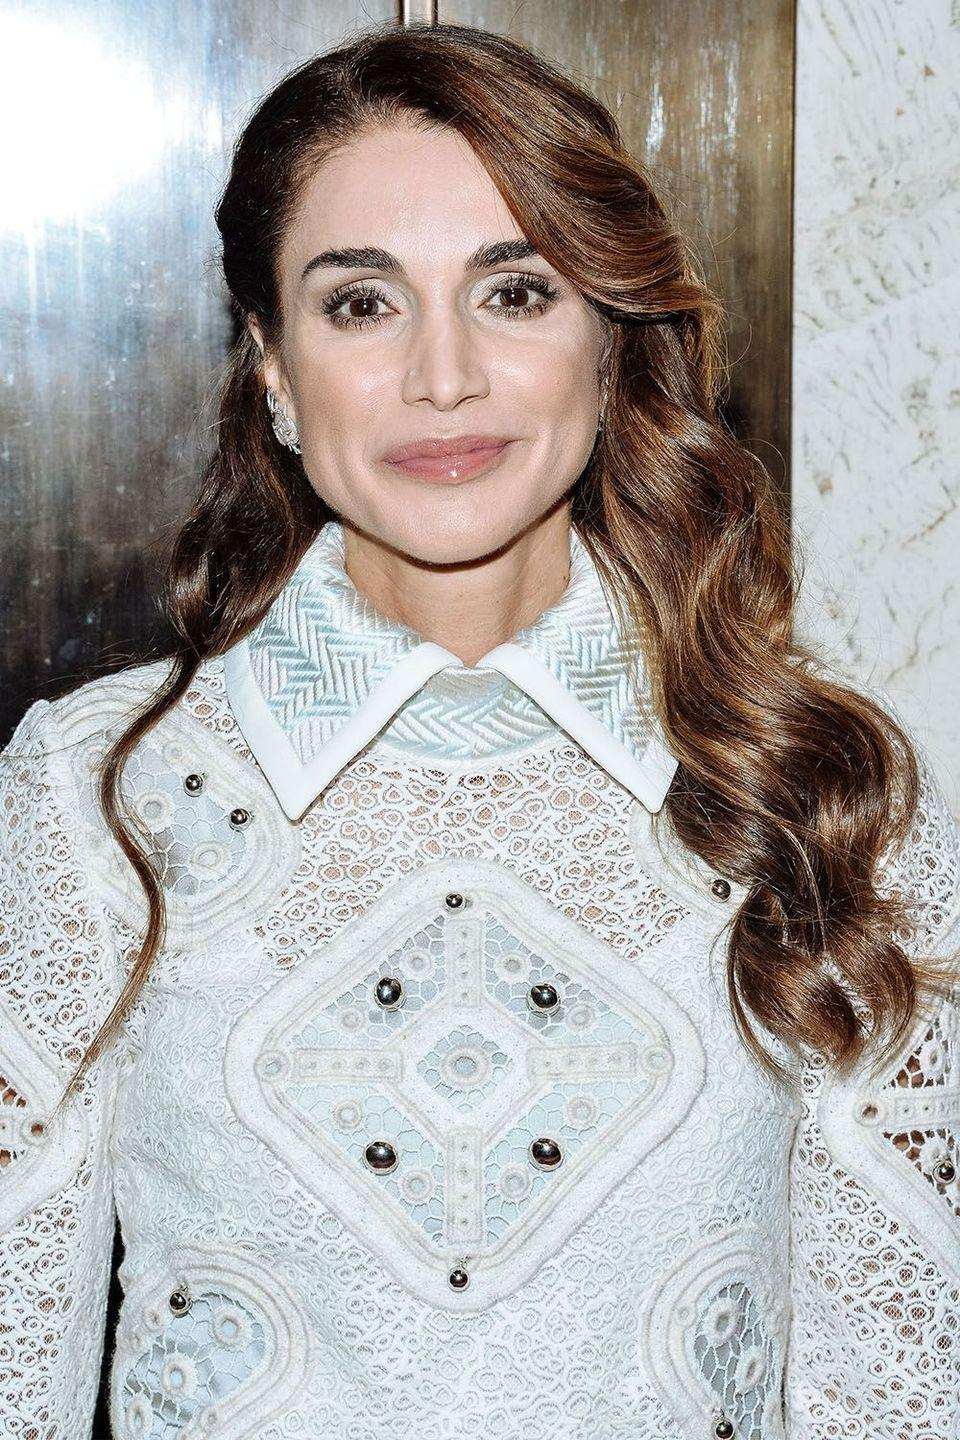 <p>Queen Rania's shiny waves</p>